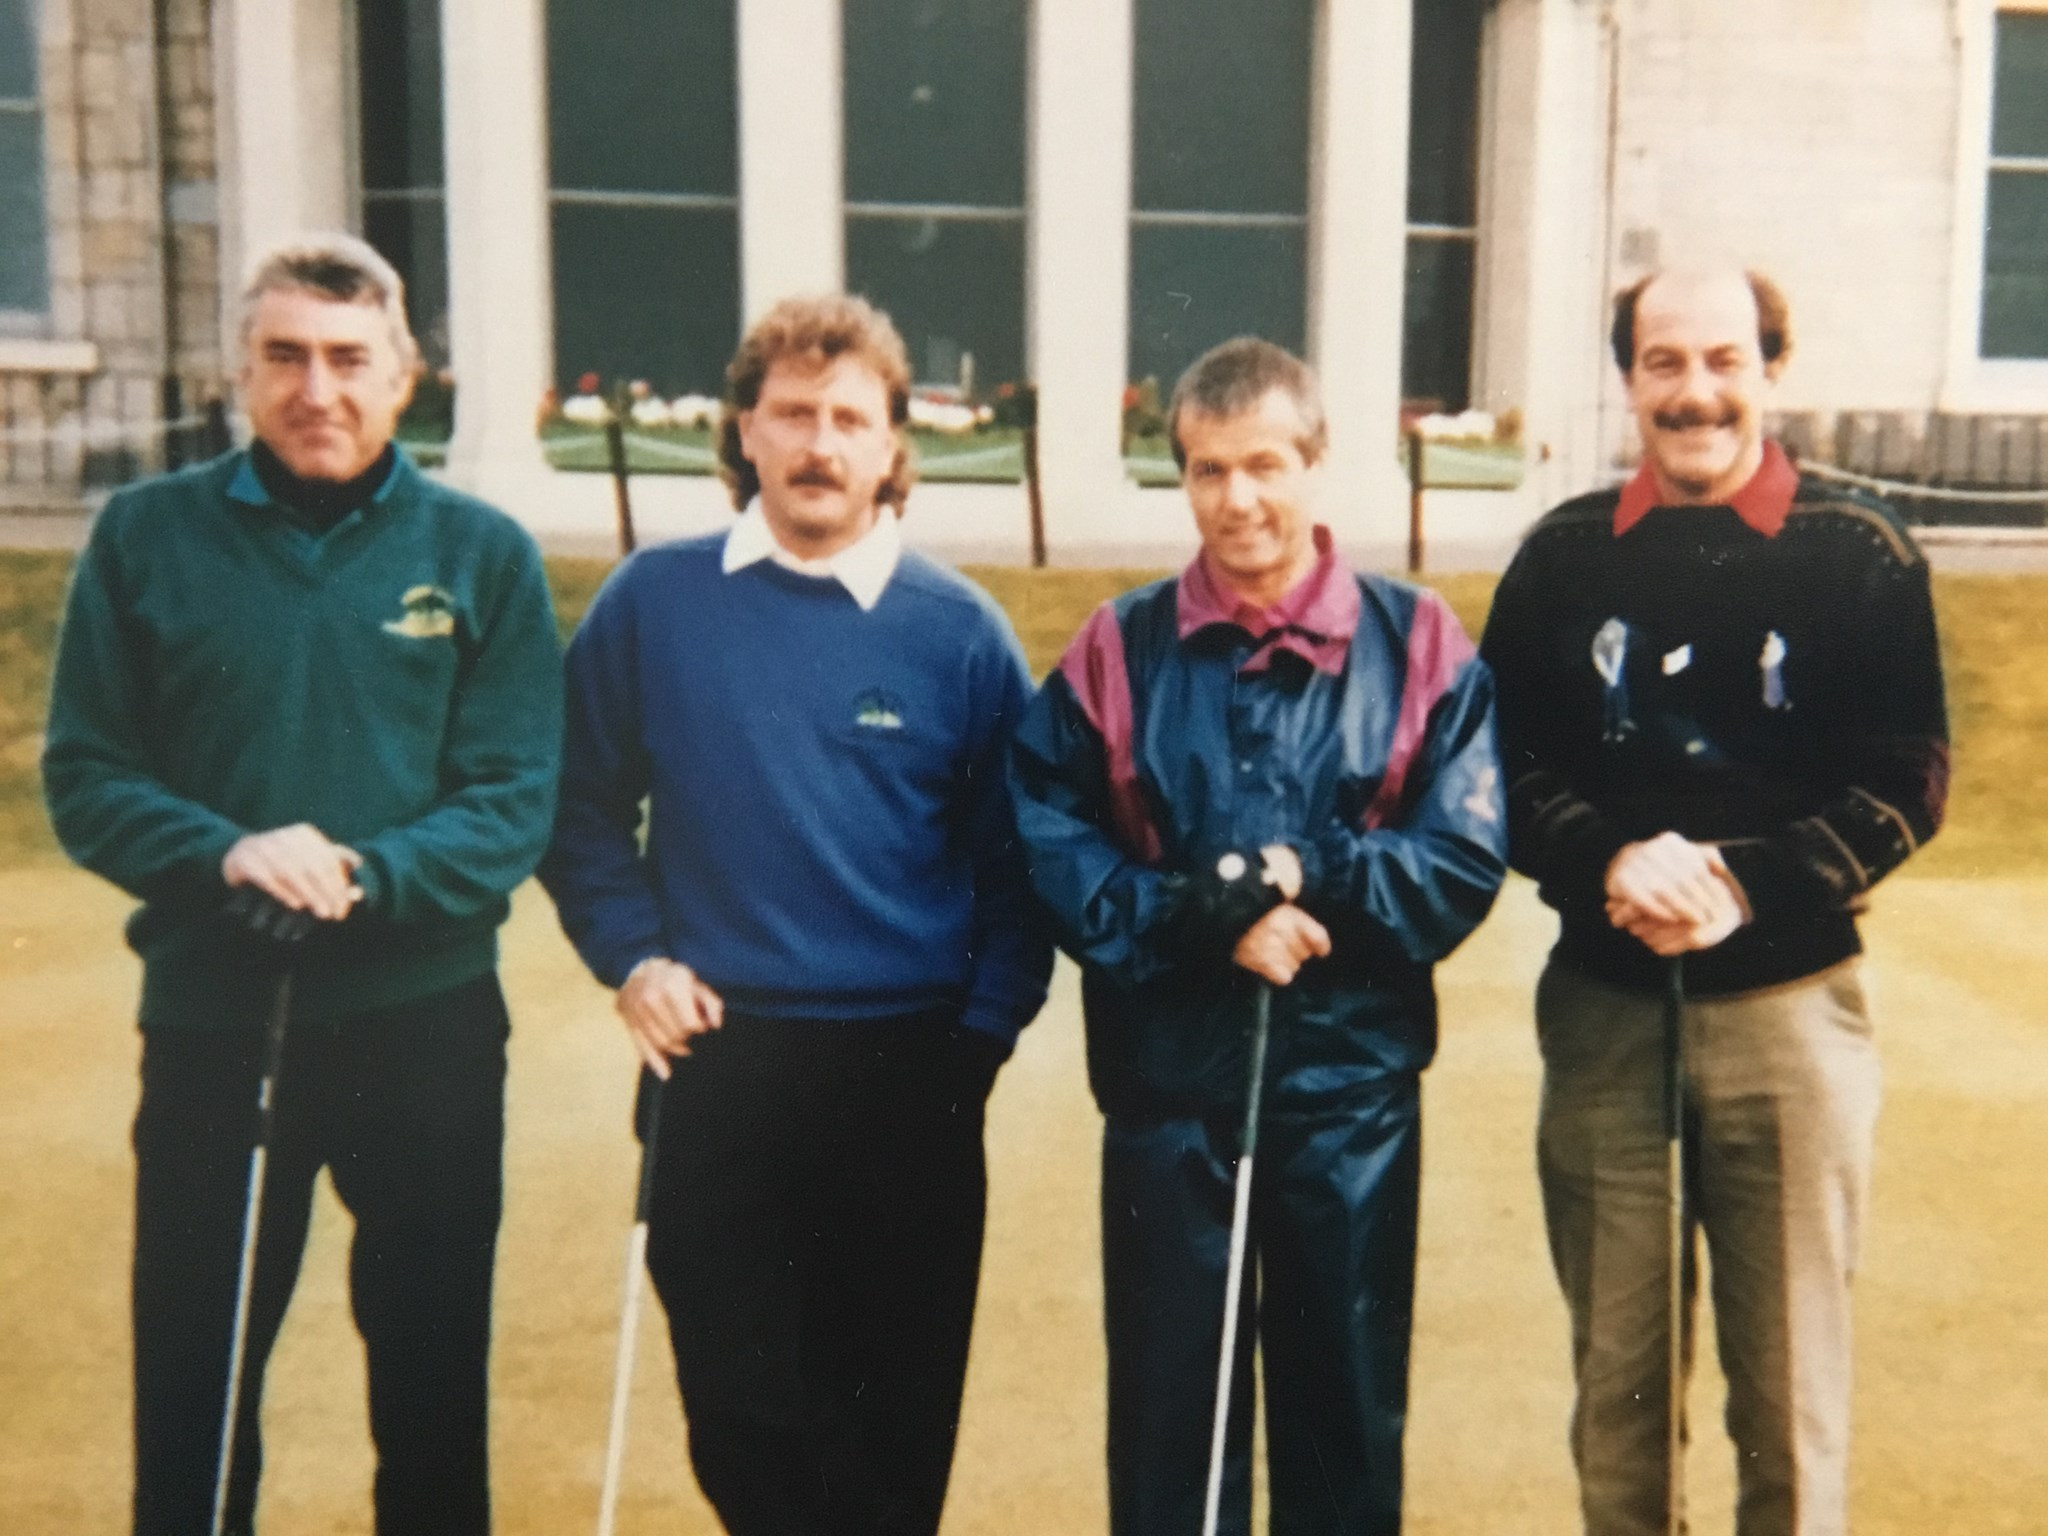 at St Andrews Golf Club 1993. Happy times.